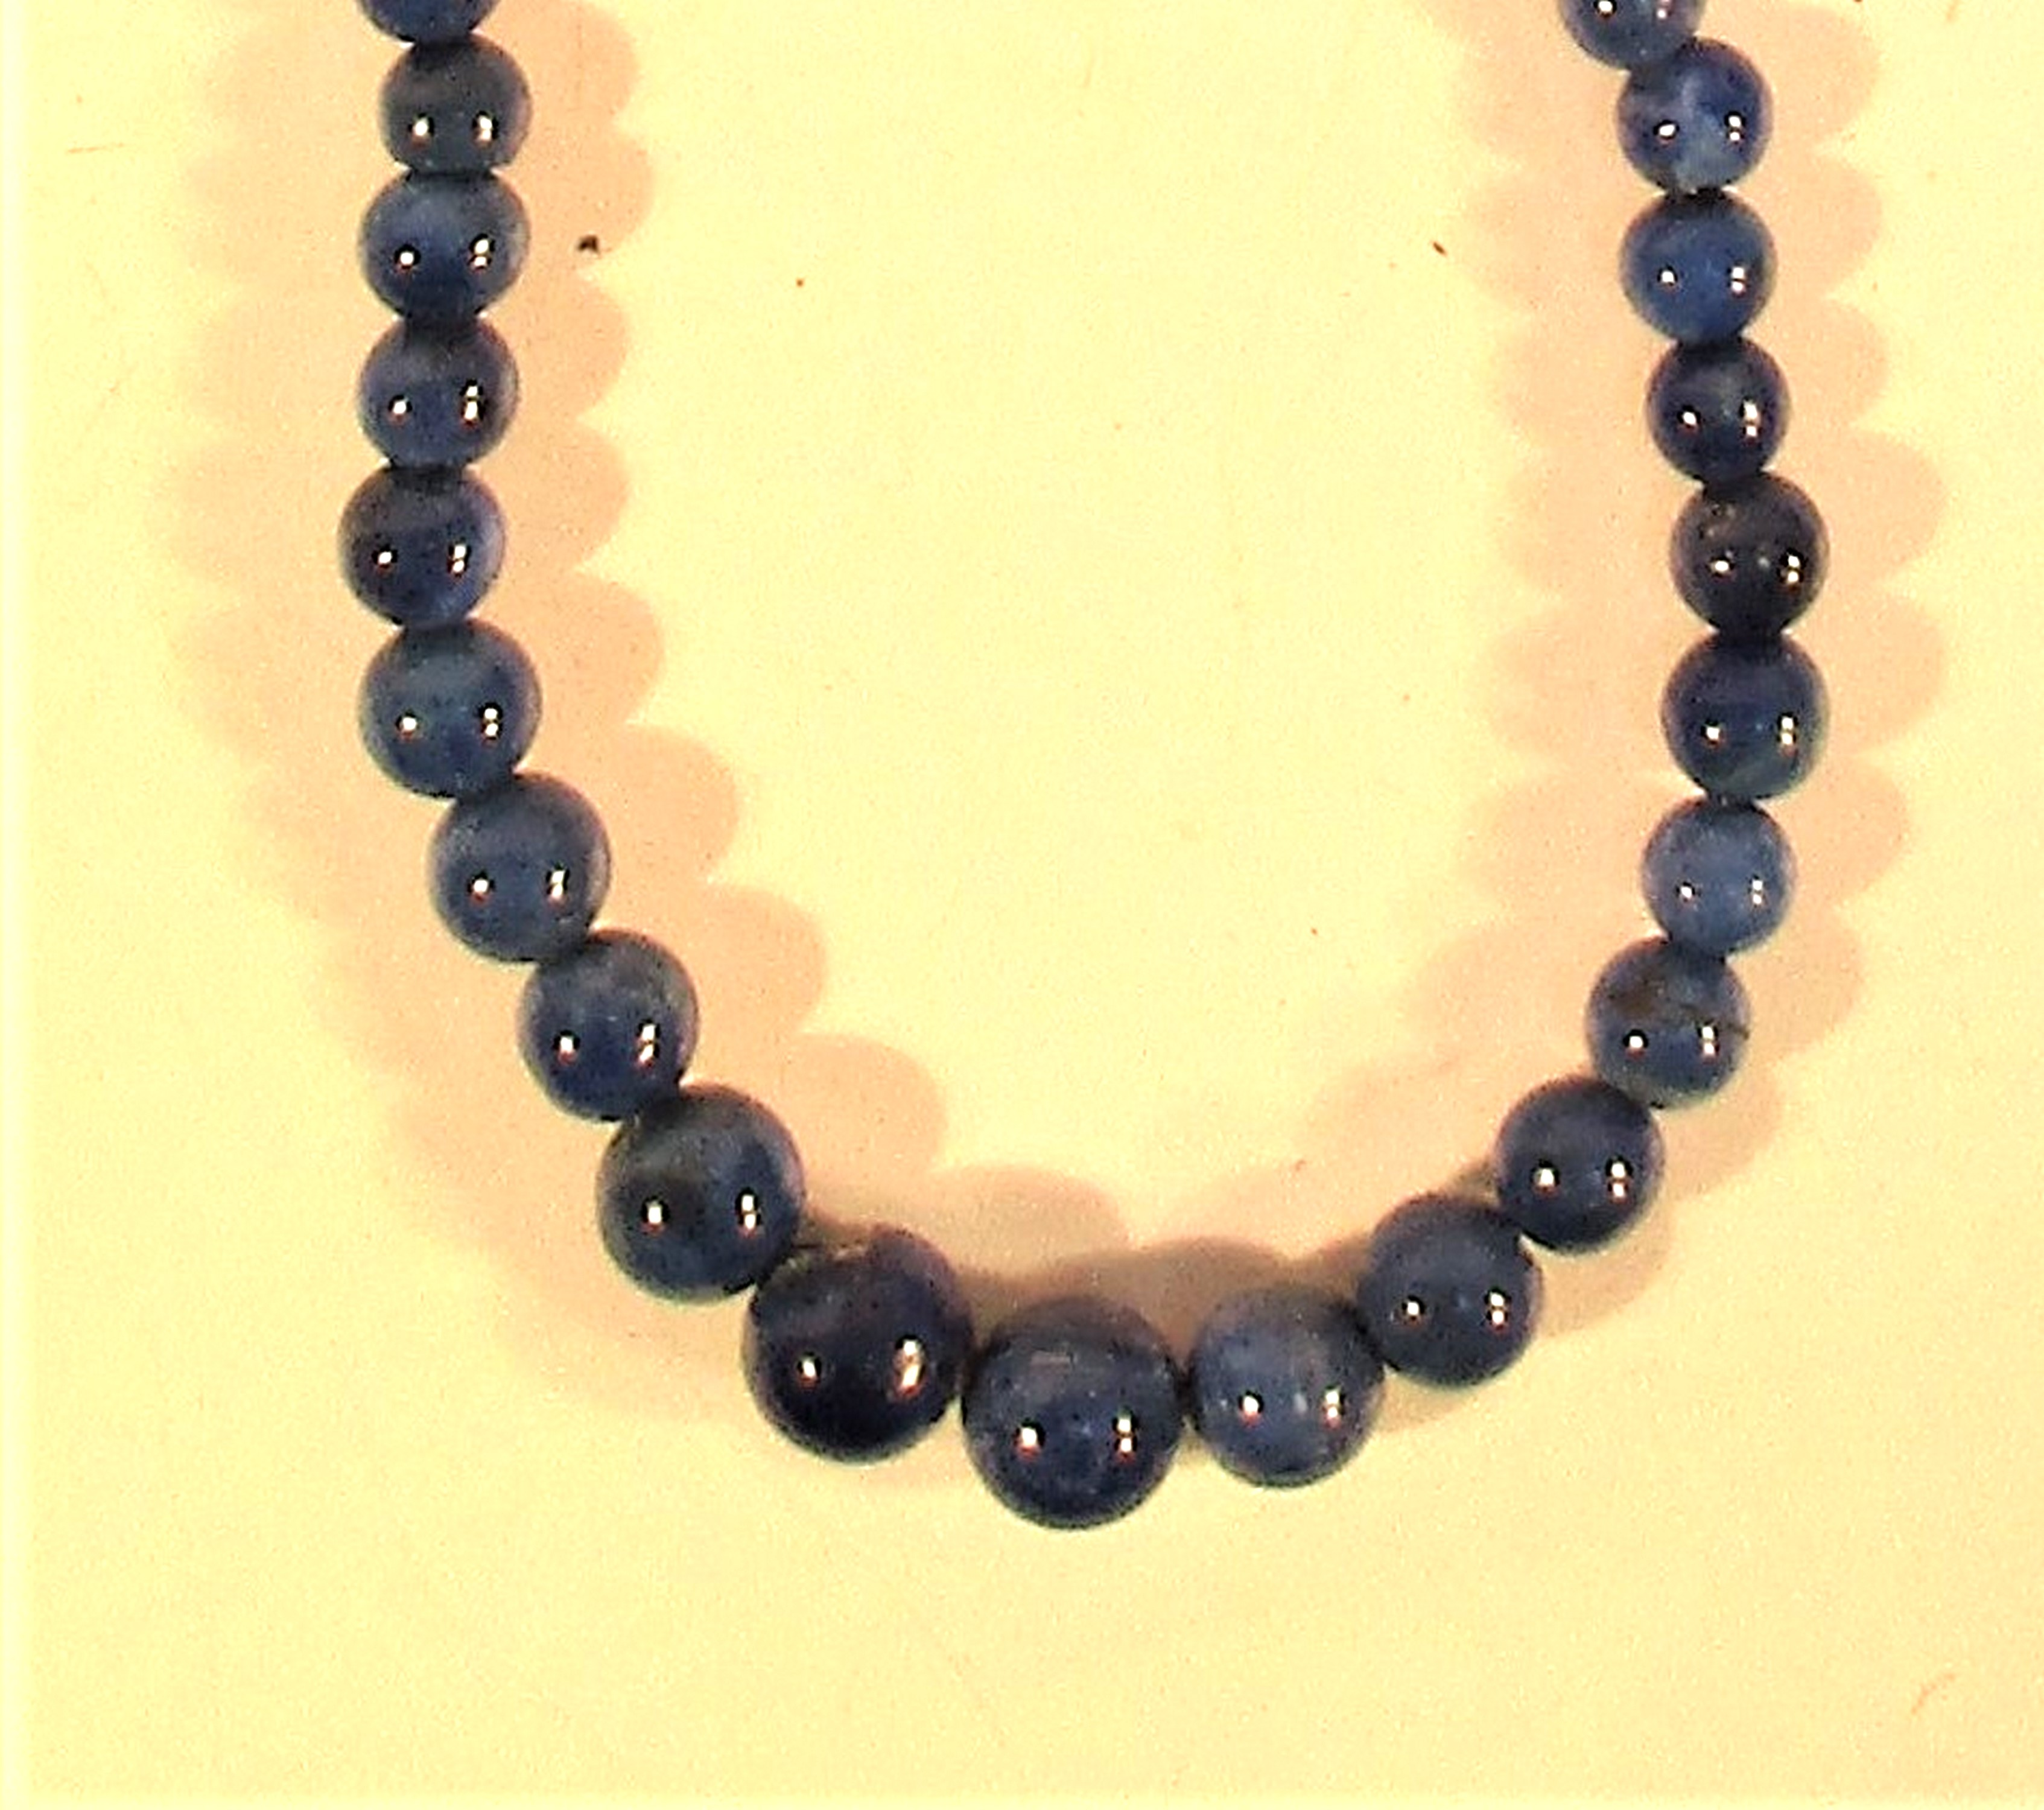 Necklace of graded lapis lazuli beads. Lapis lazuli is mined in a very remote corner of Afghanistan. - Image 2 of 2